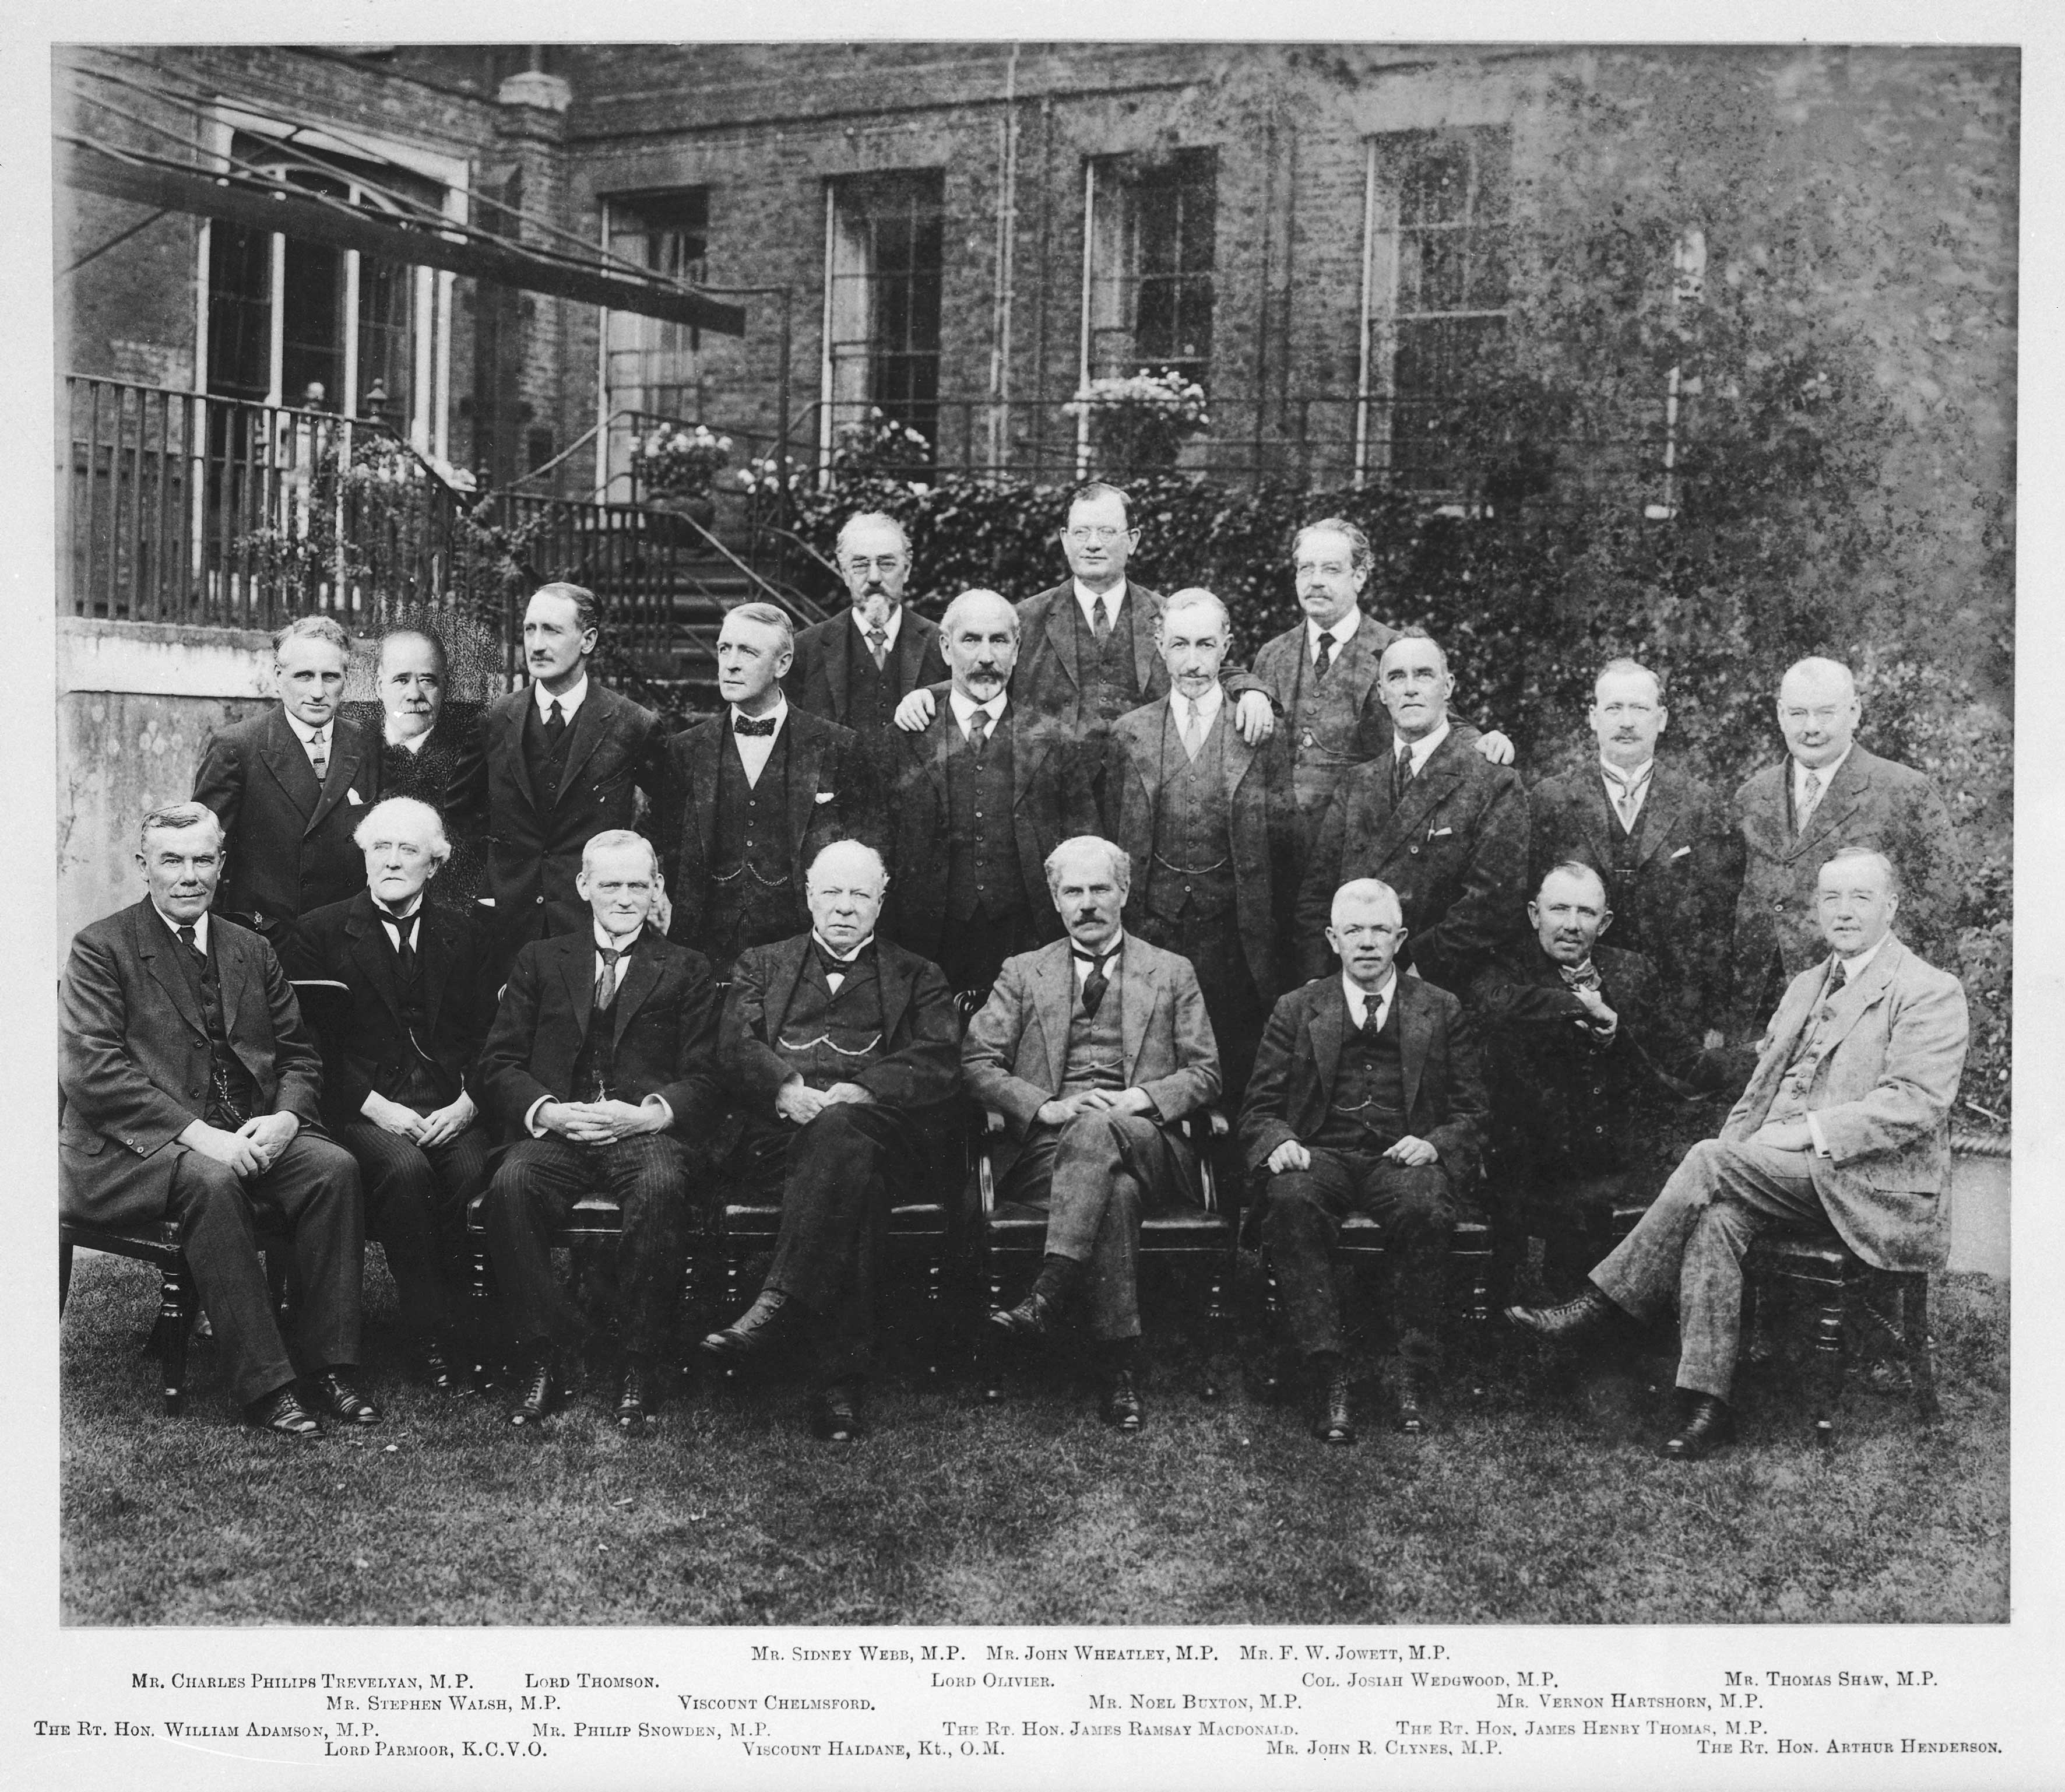 PRO30/69/1668 (Pt.4 no.318) The First Labour Cabinet, 1924